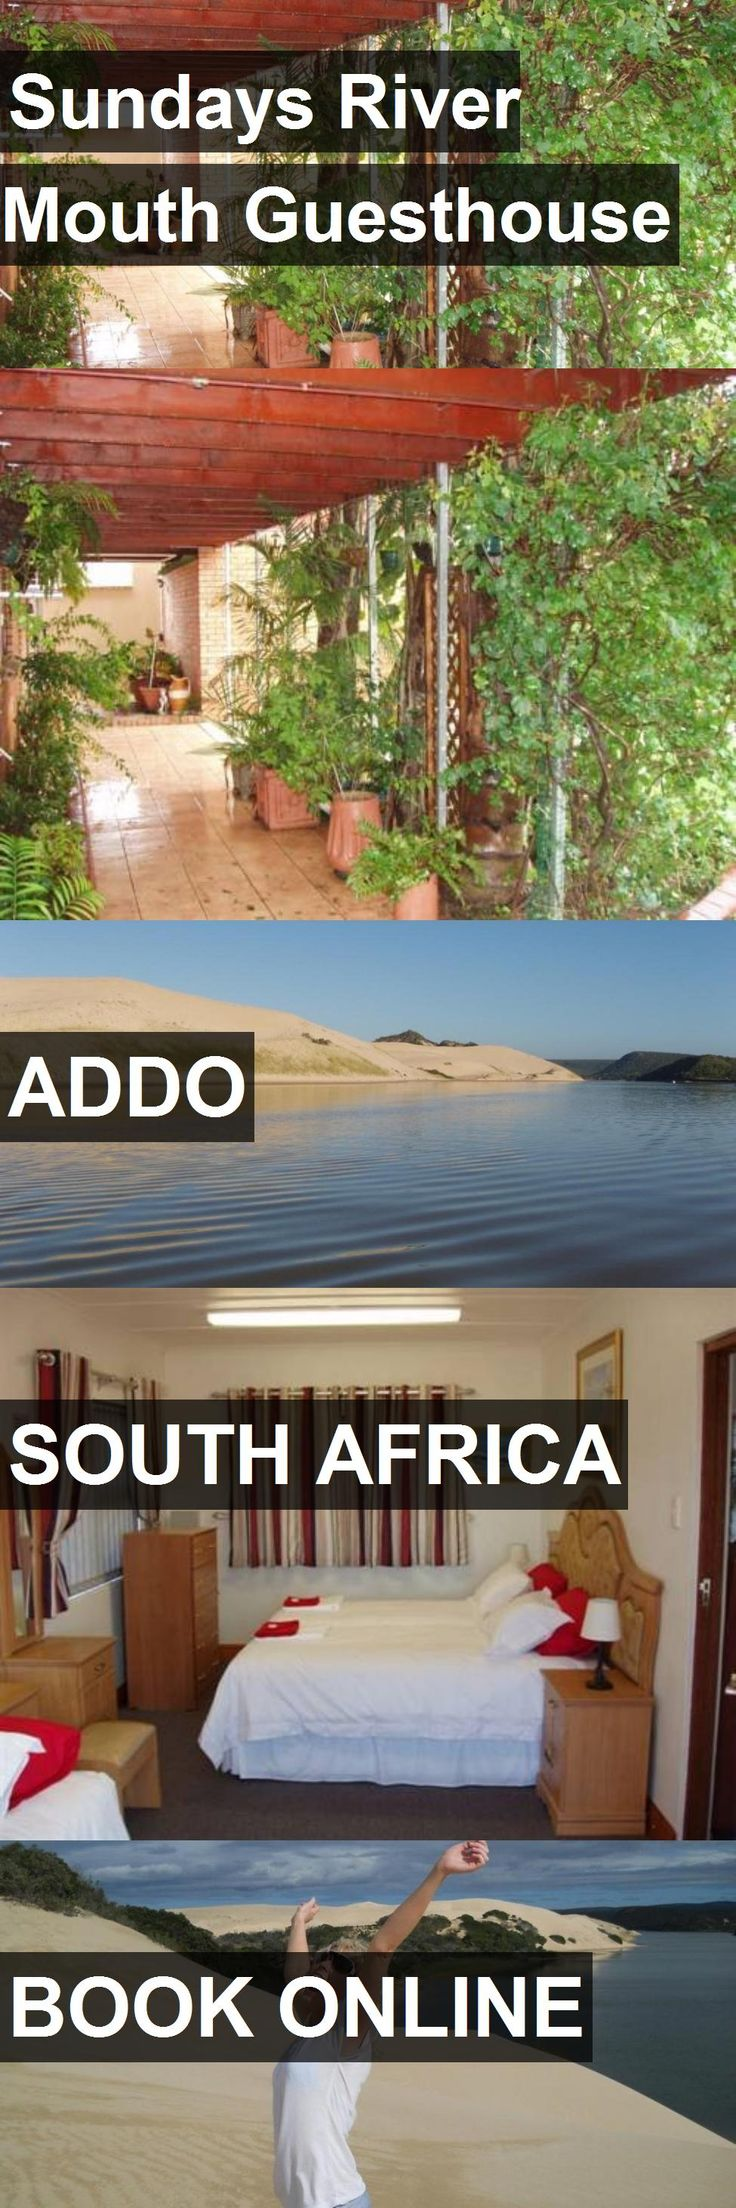 Hotel Sundays River Mouth Guesthouse in Addo, South Africa. For more information, photos, reviews and best prices please follow the link. #SouthAfrica #Addo #travel #vacation #hotel